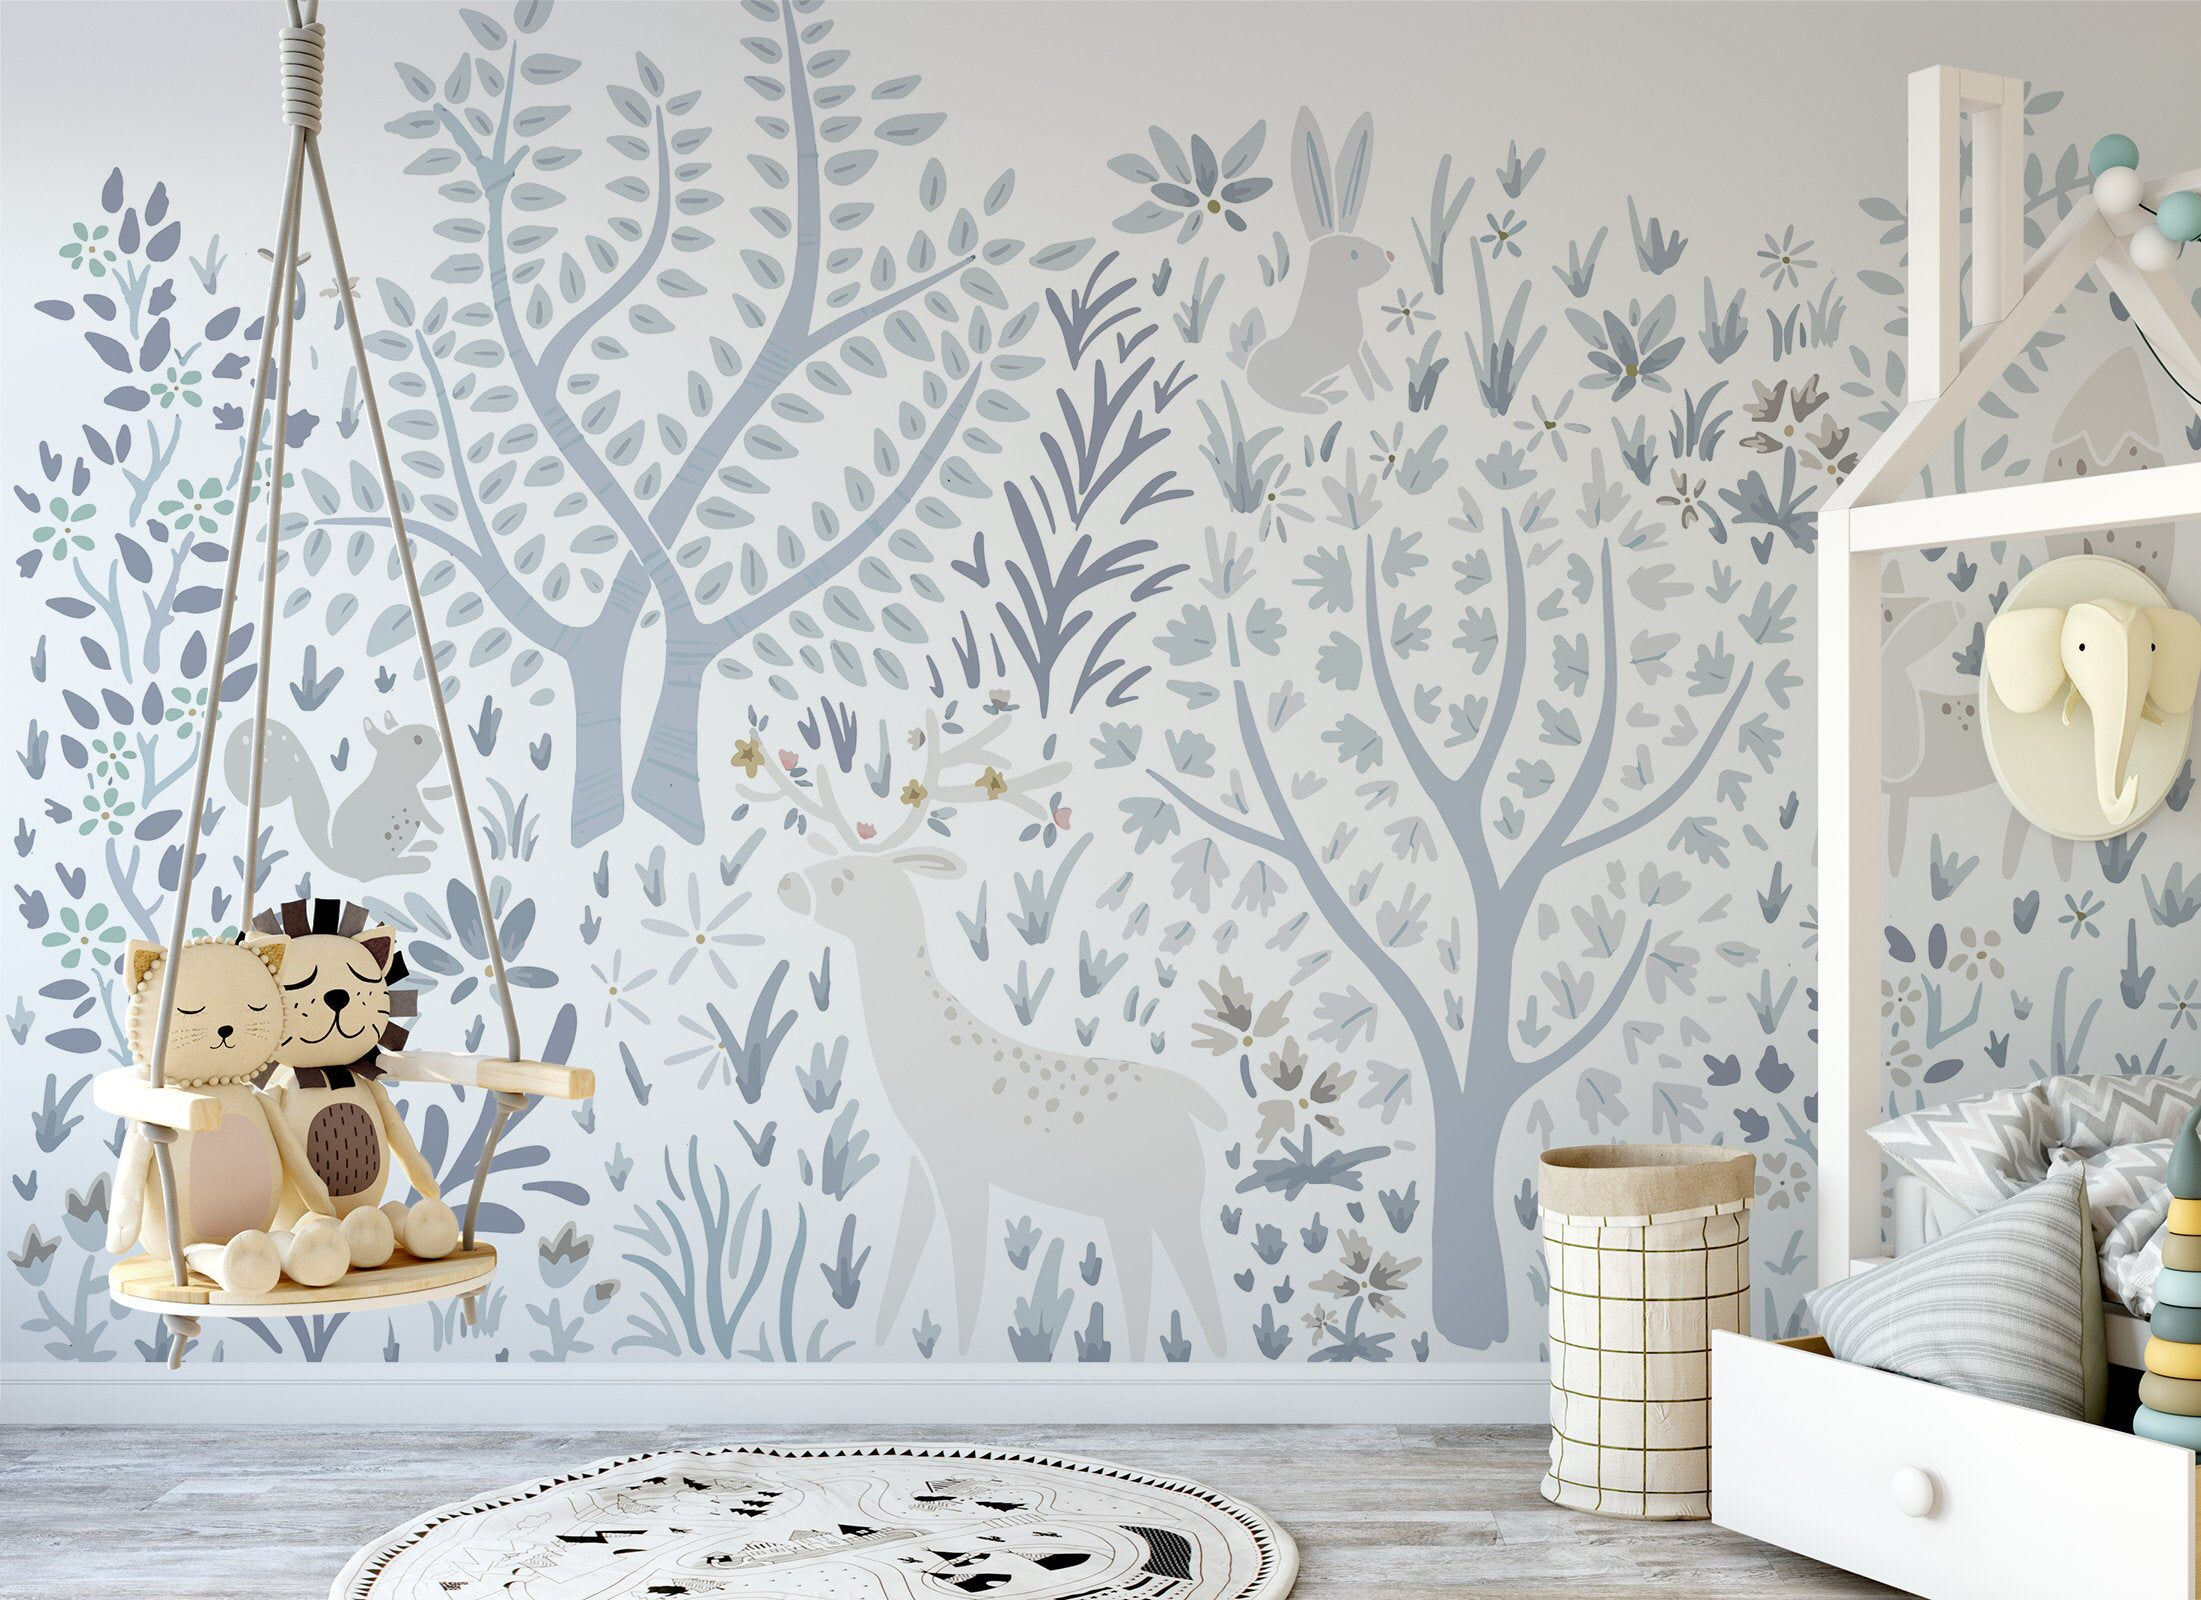 Woodland Forest Wall Mural On White 520 Forest Wall Mural Nursery Wallpaper Wall Murals